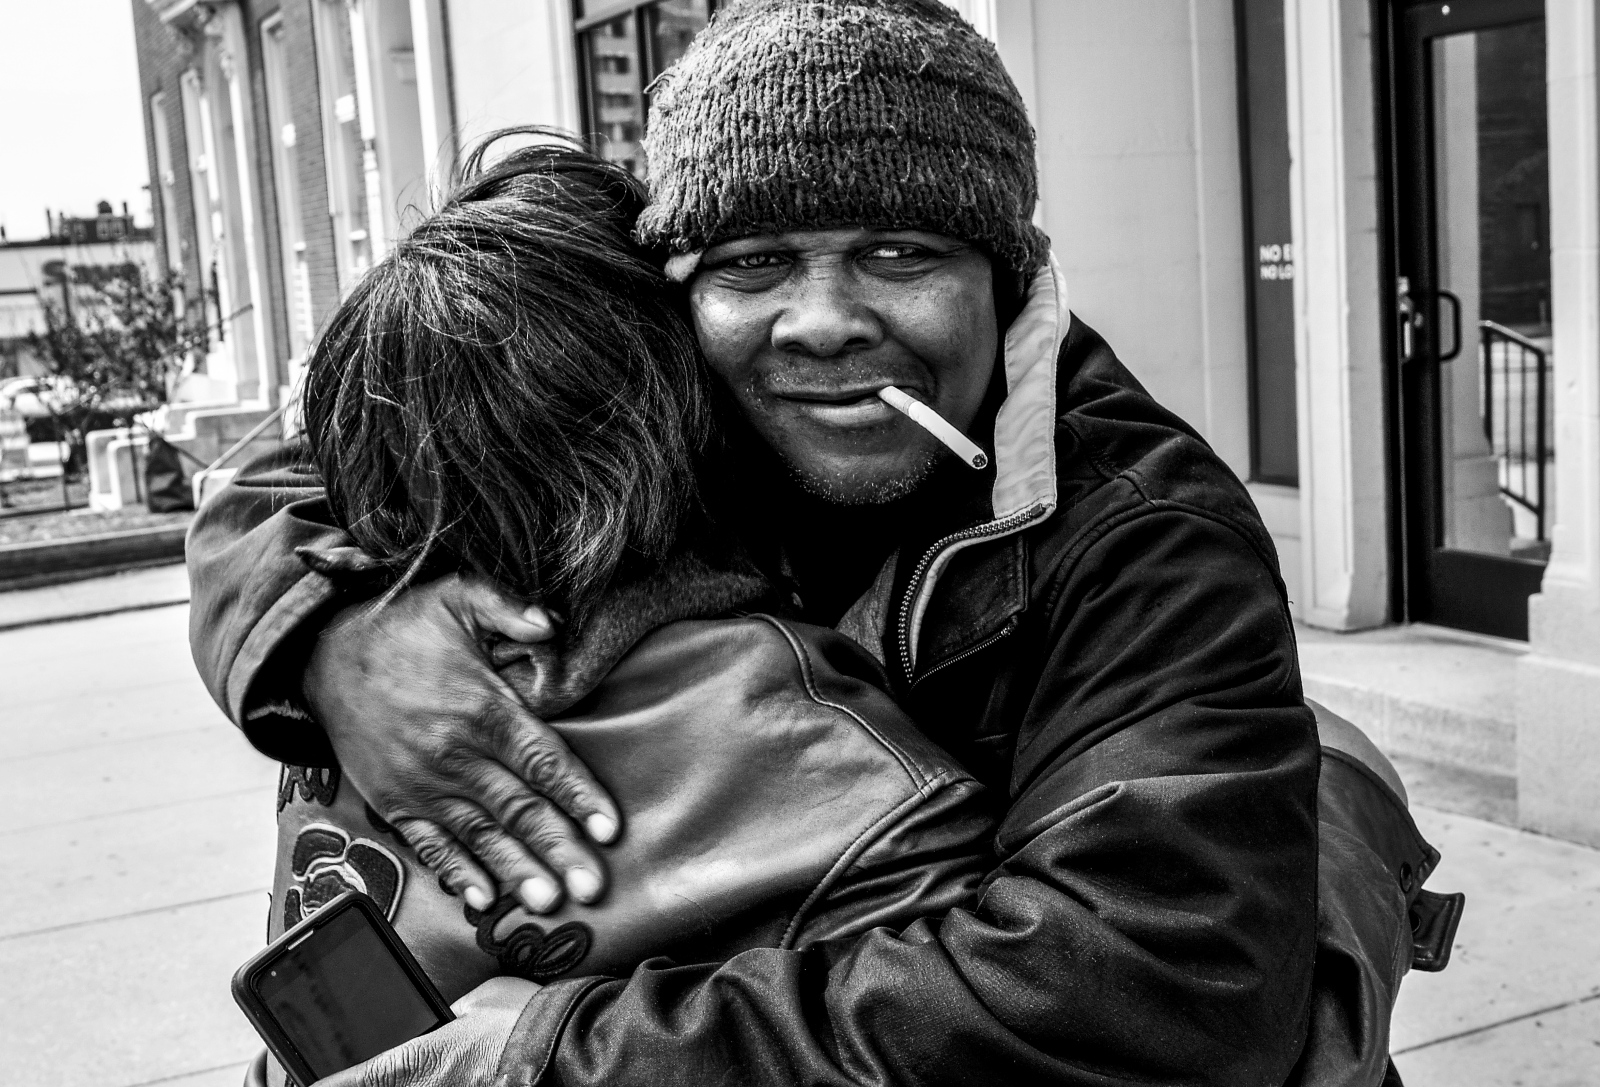 Wanda Sanders embraces her cousin Jessie, who is also  a recovering addict.